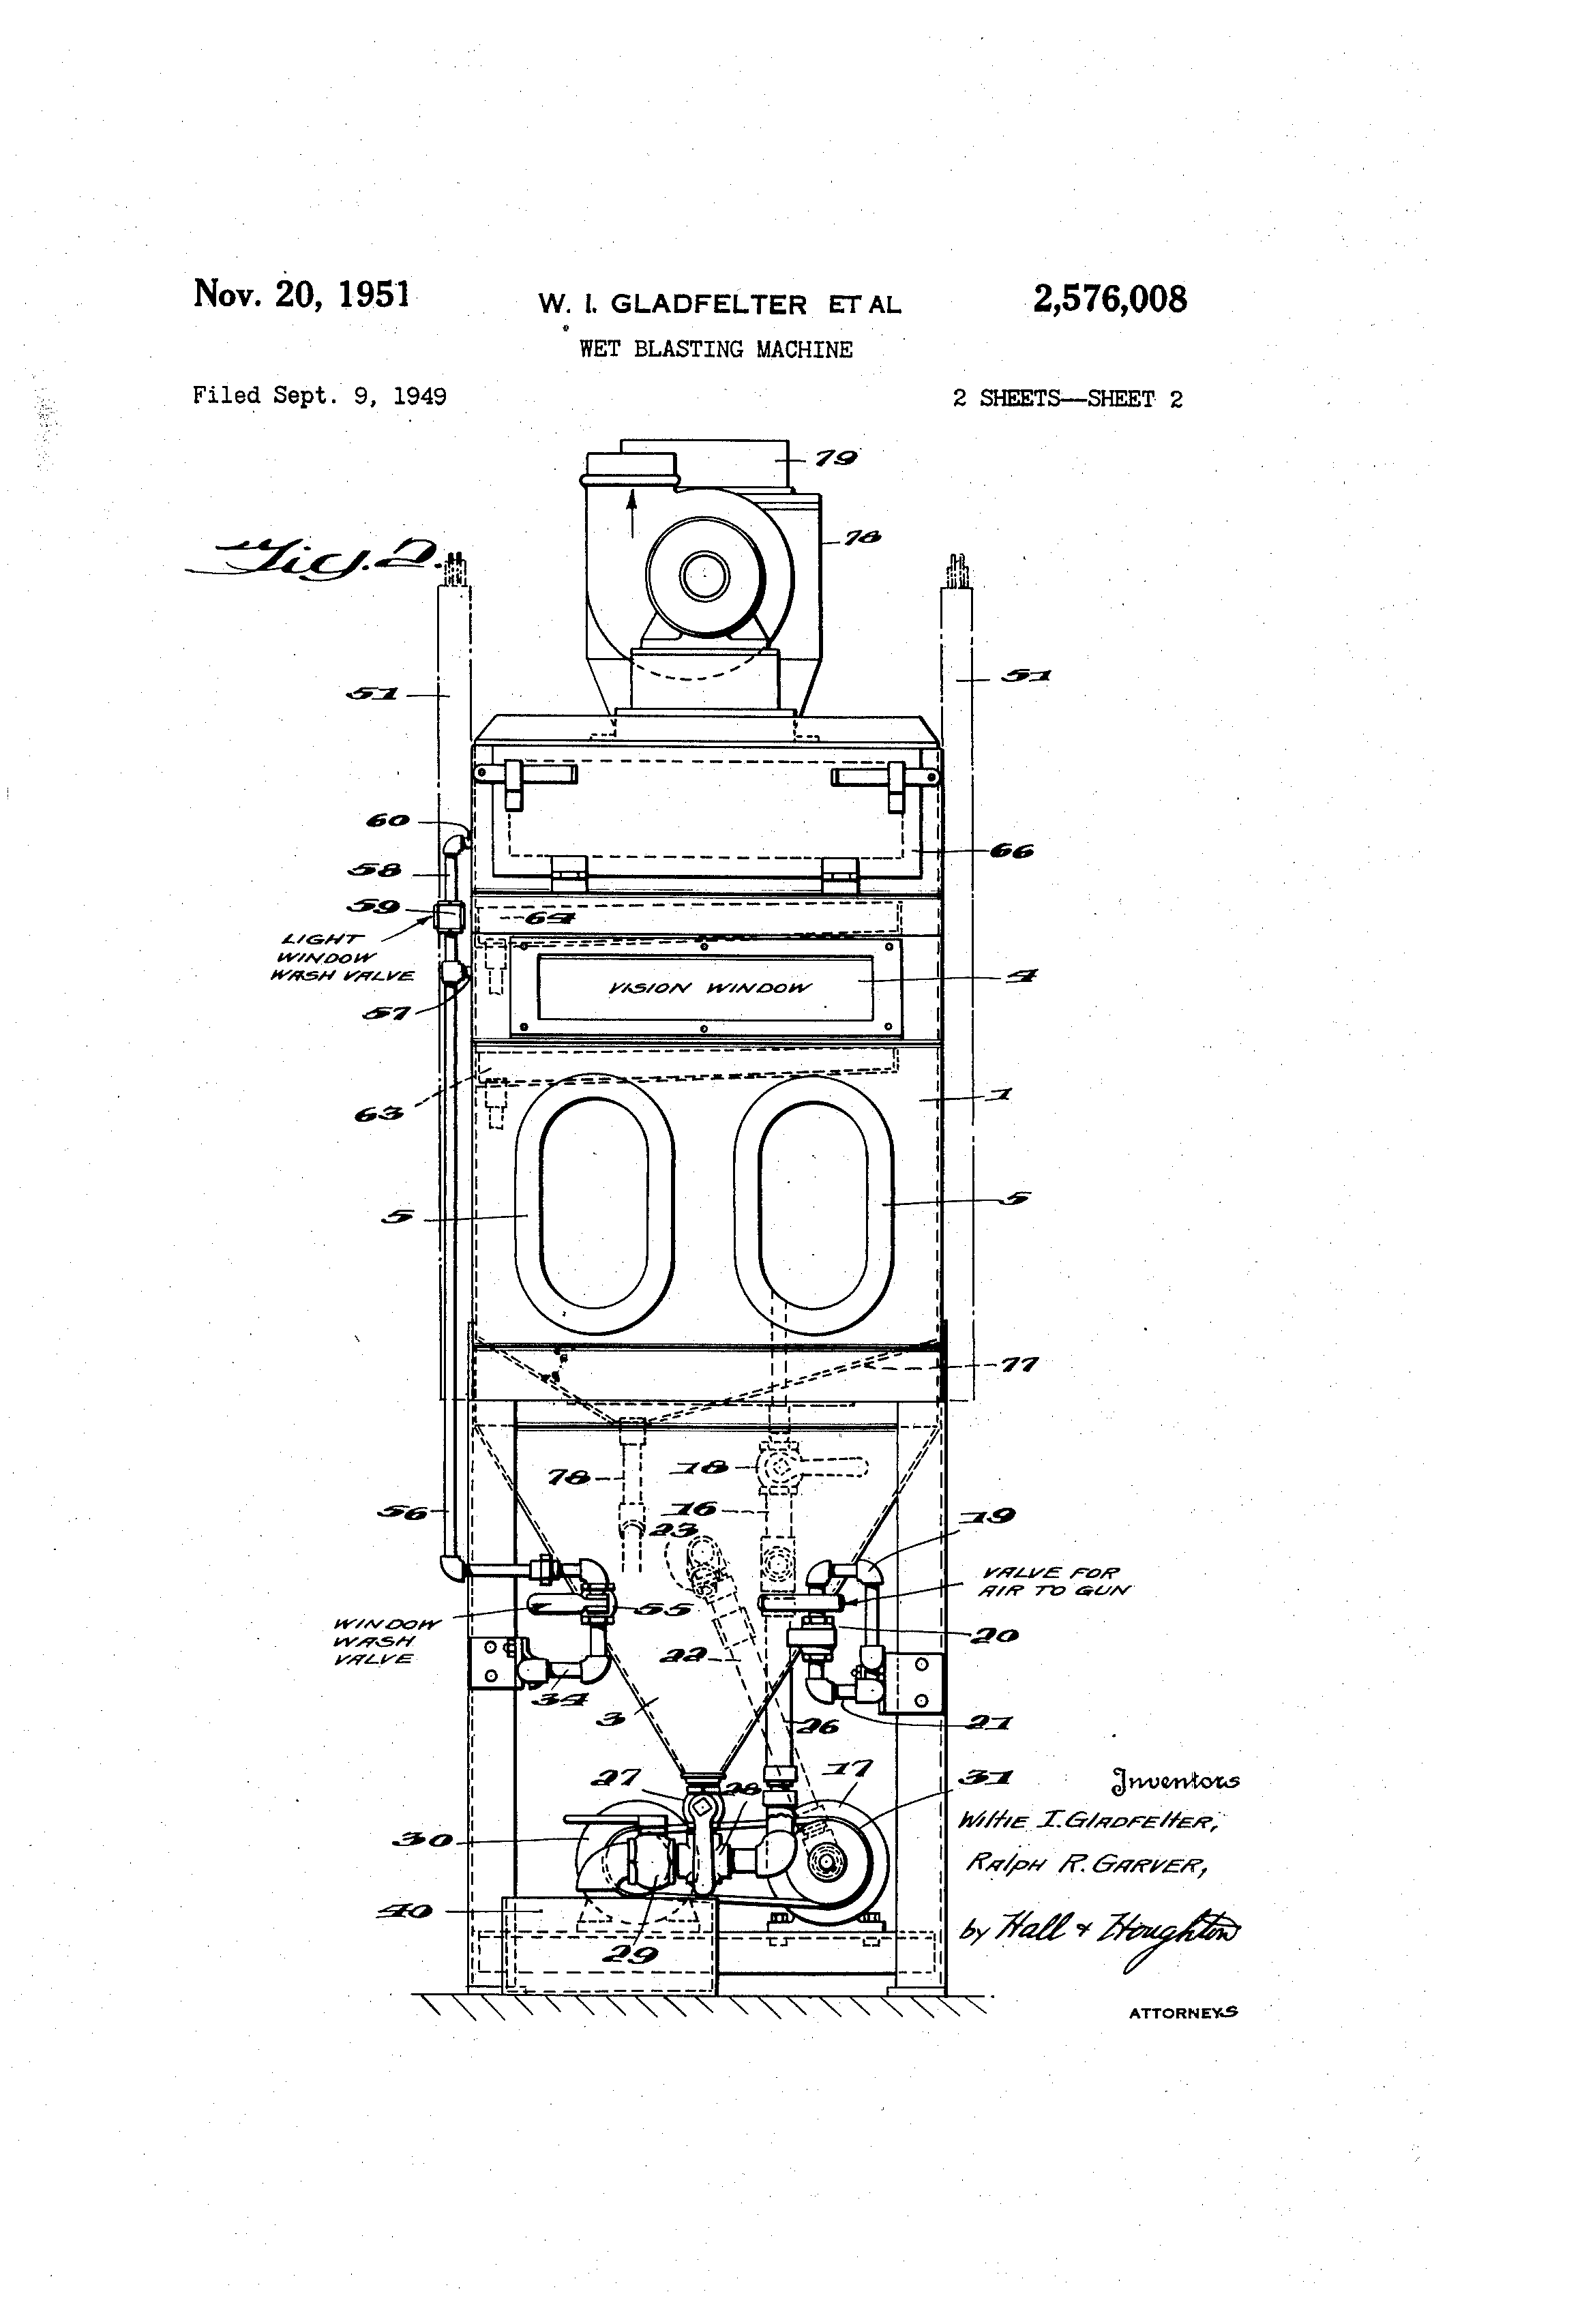 patent drawing previous page